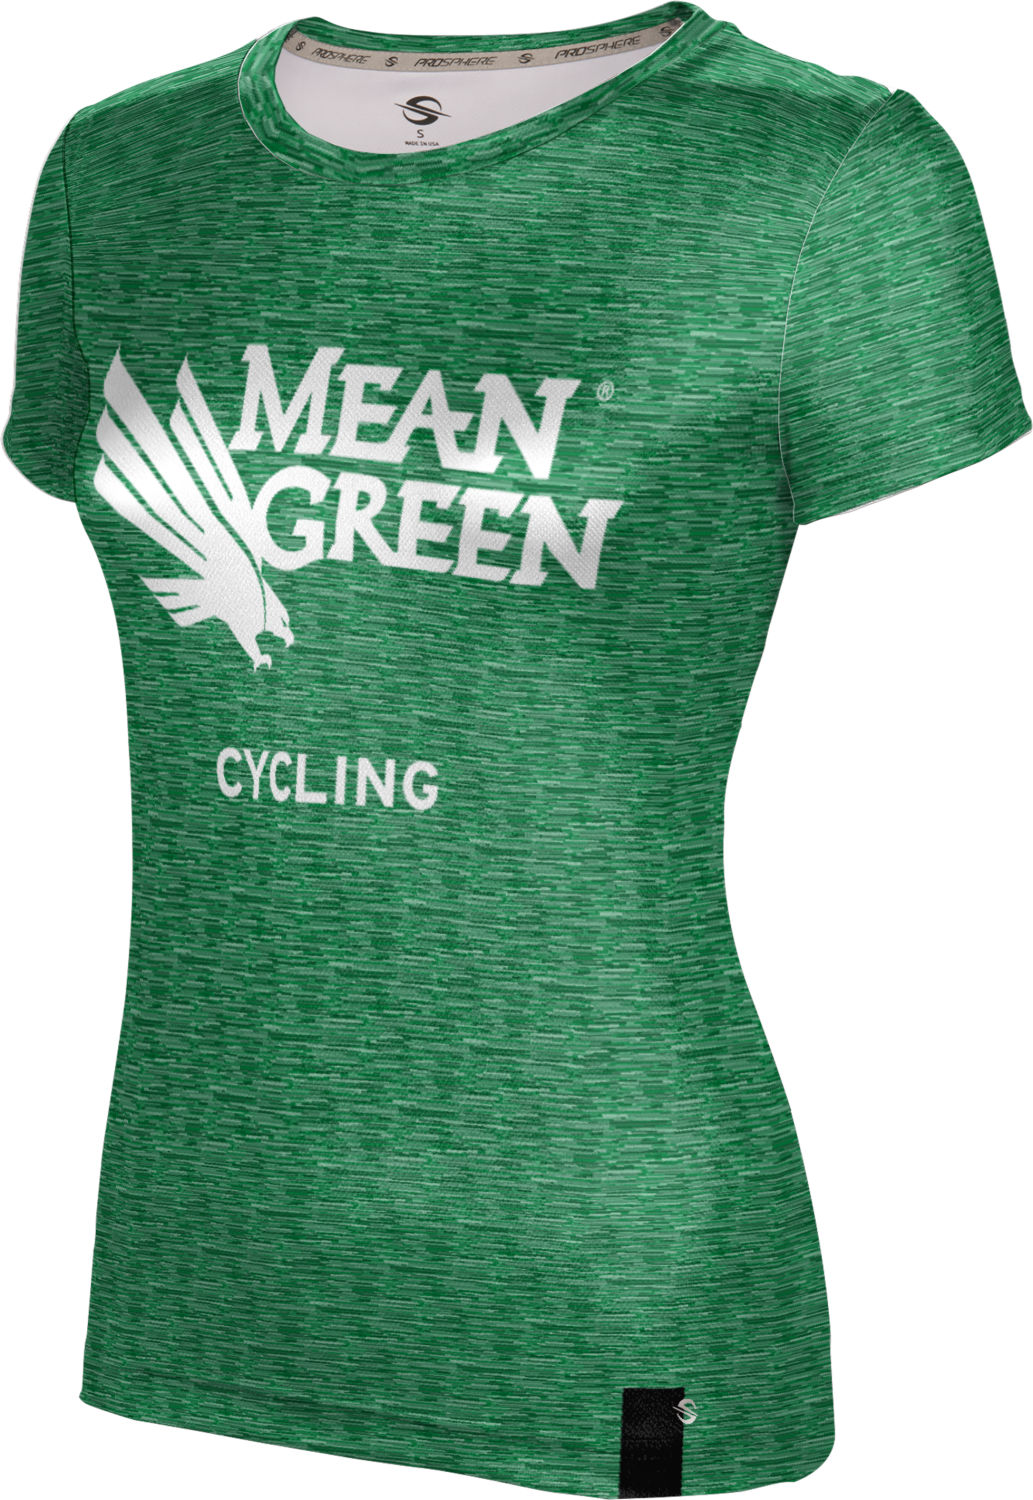 ProSphere Cycling Women's Short Sleeve Tee